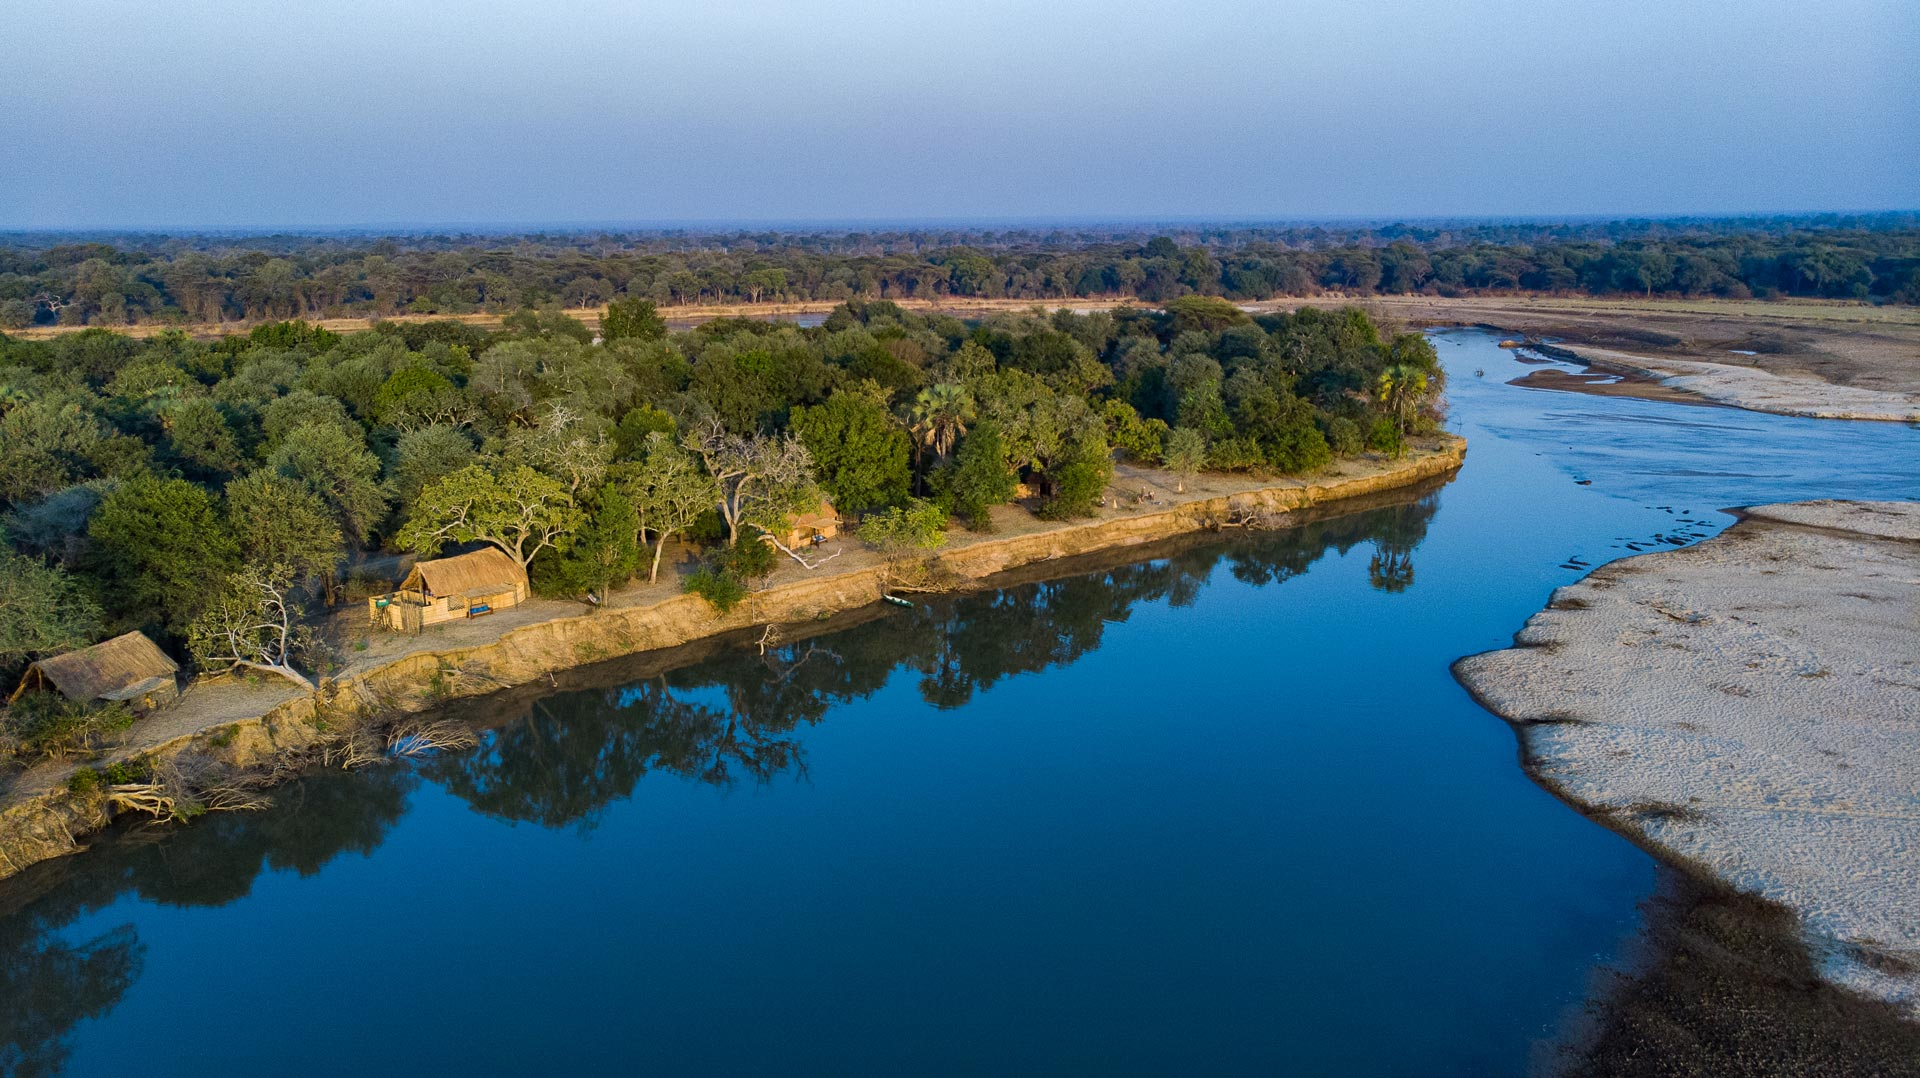 An arial view of Takwela Camp and Luangwa river in North Luangwa, Zambia